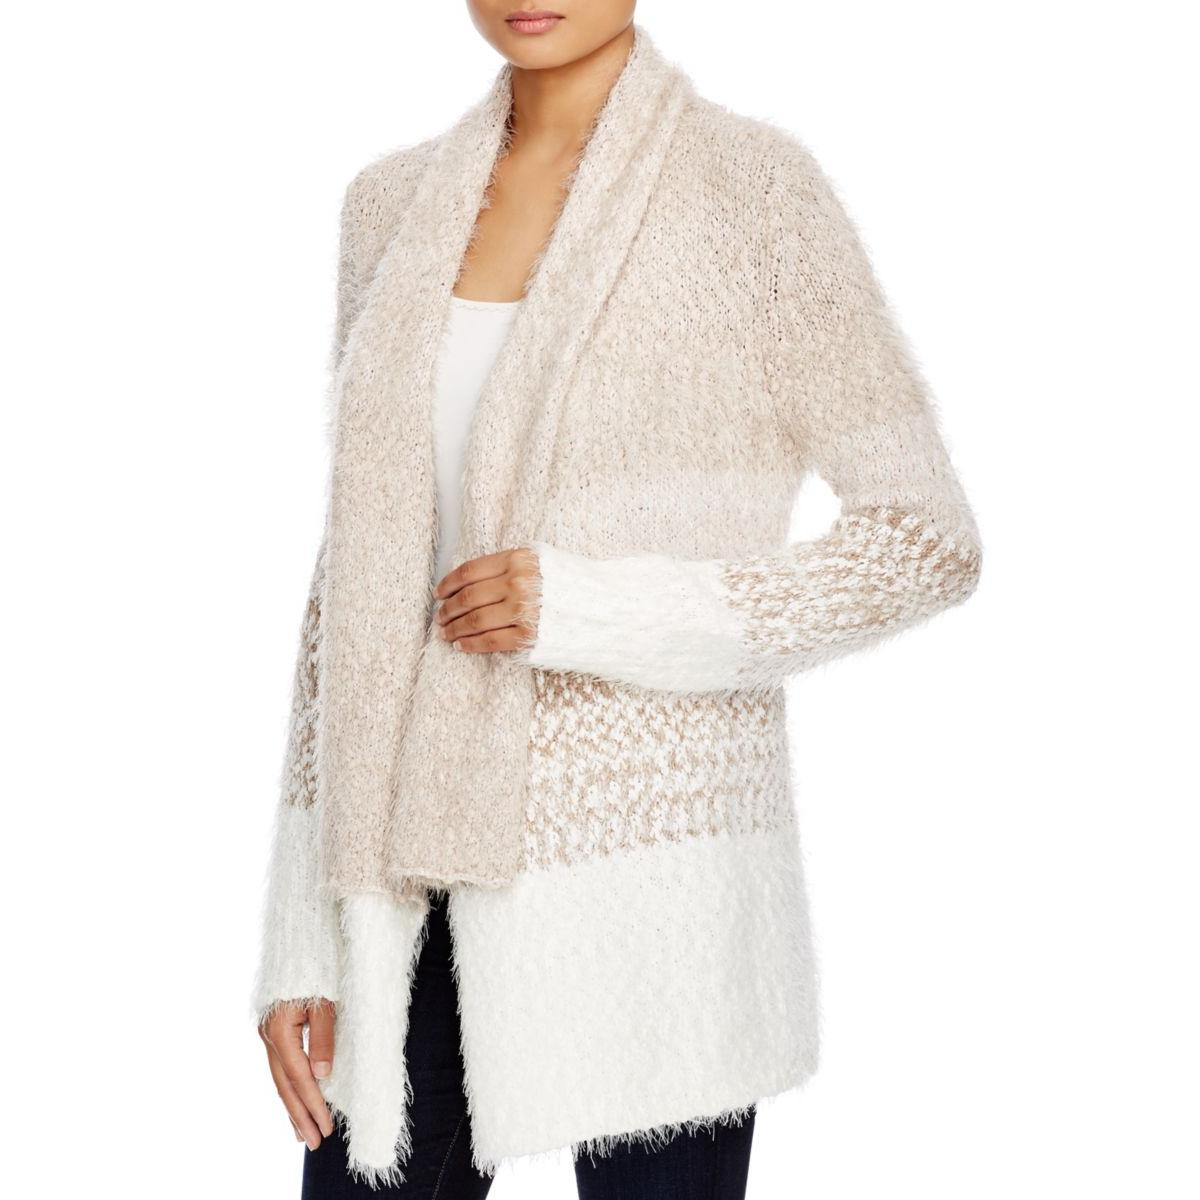 Cupio Womens Open Front Colorblock Cardigan Sweater